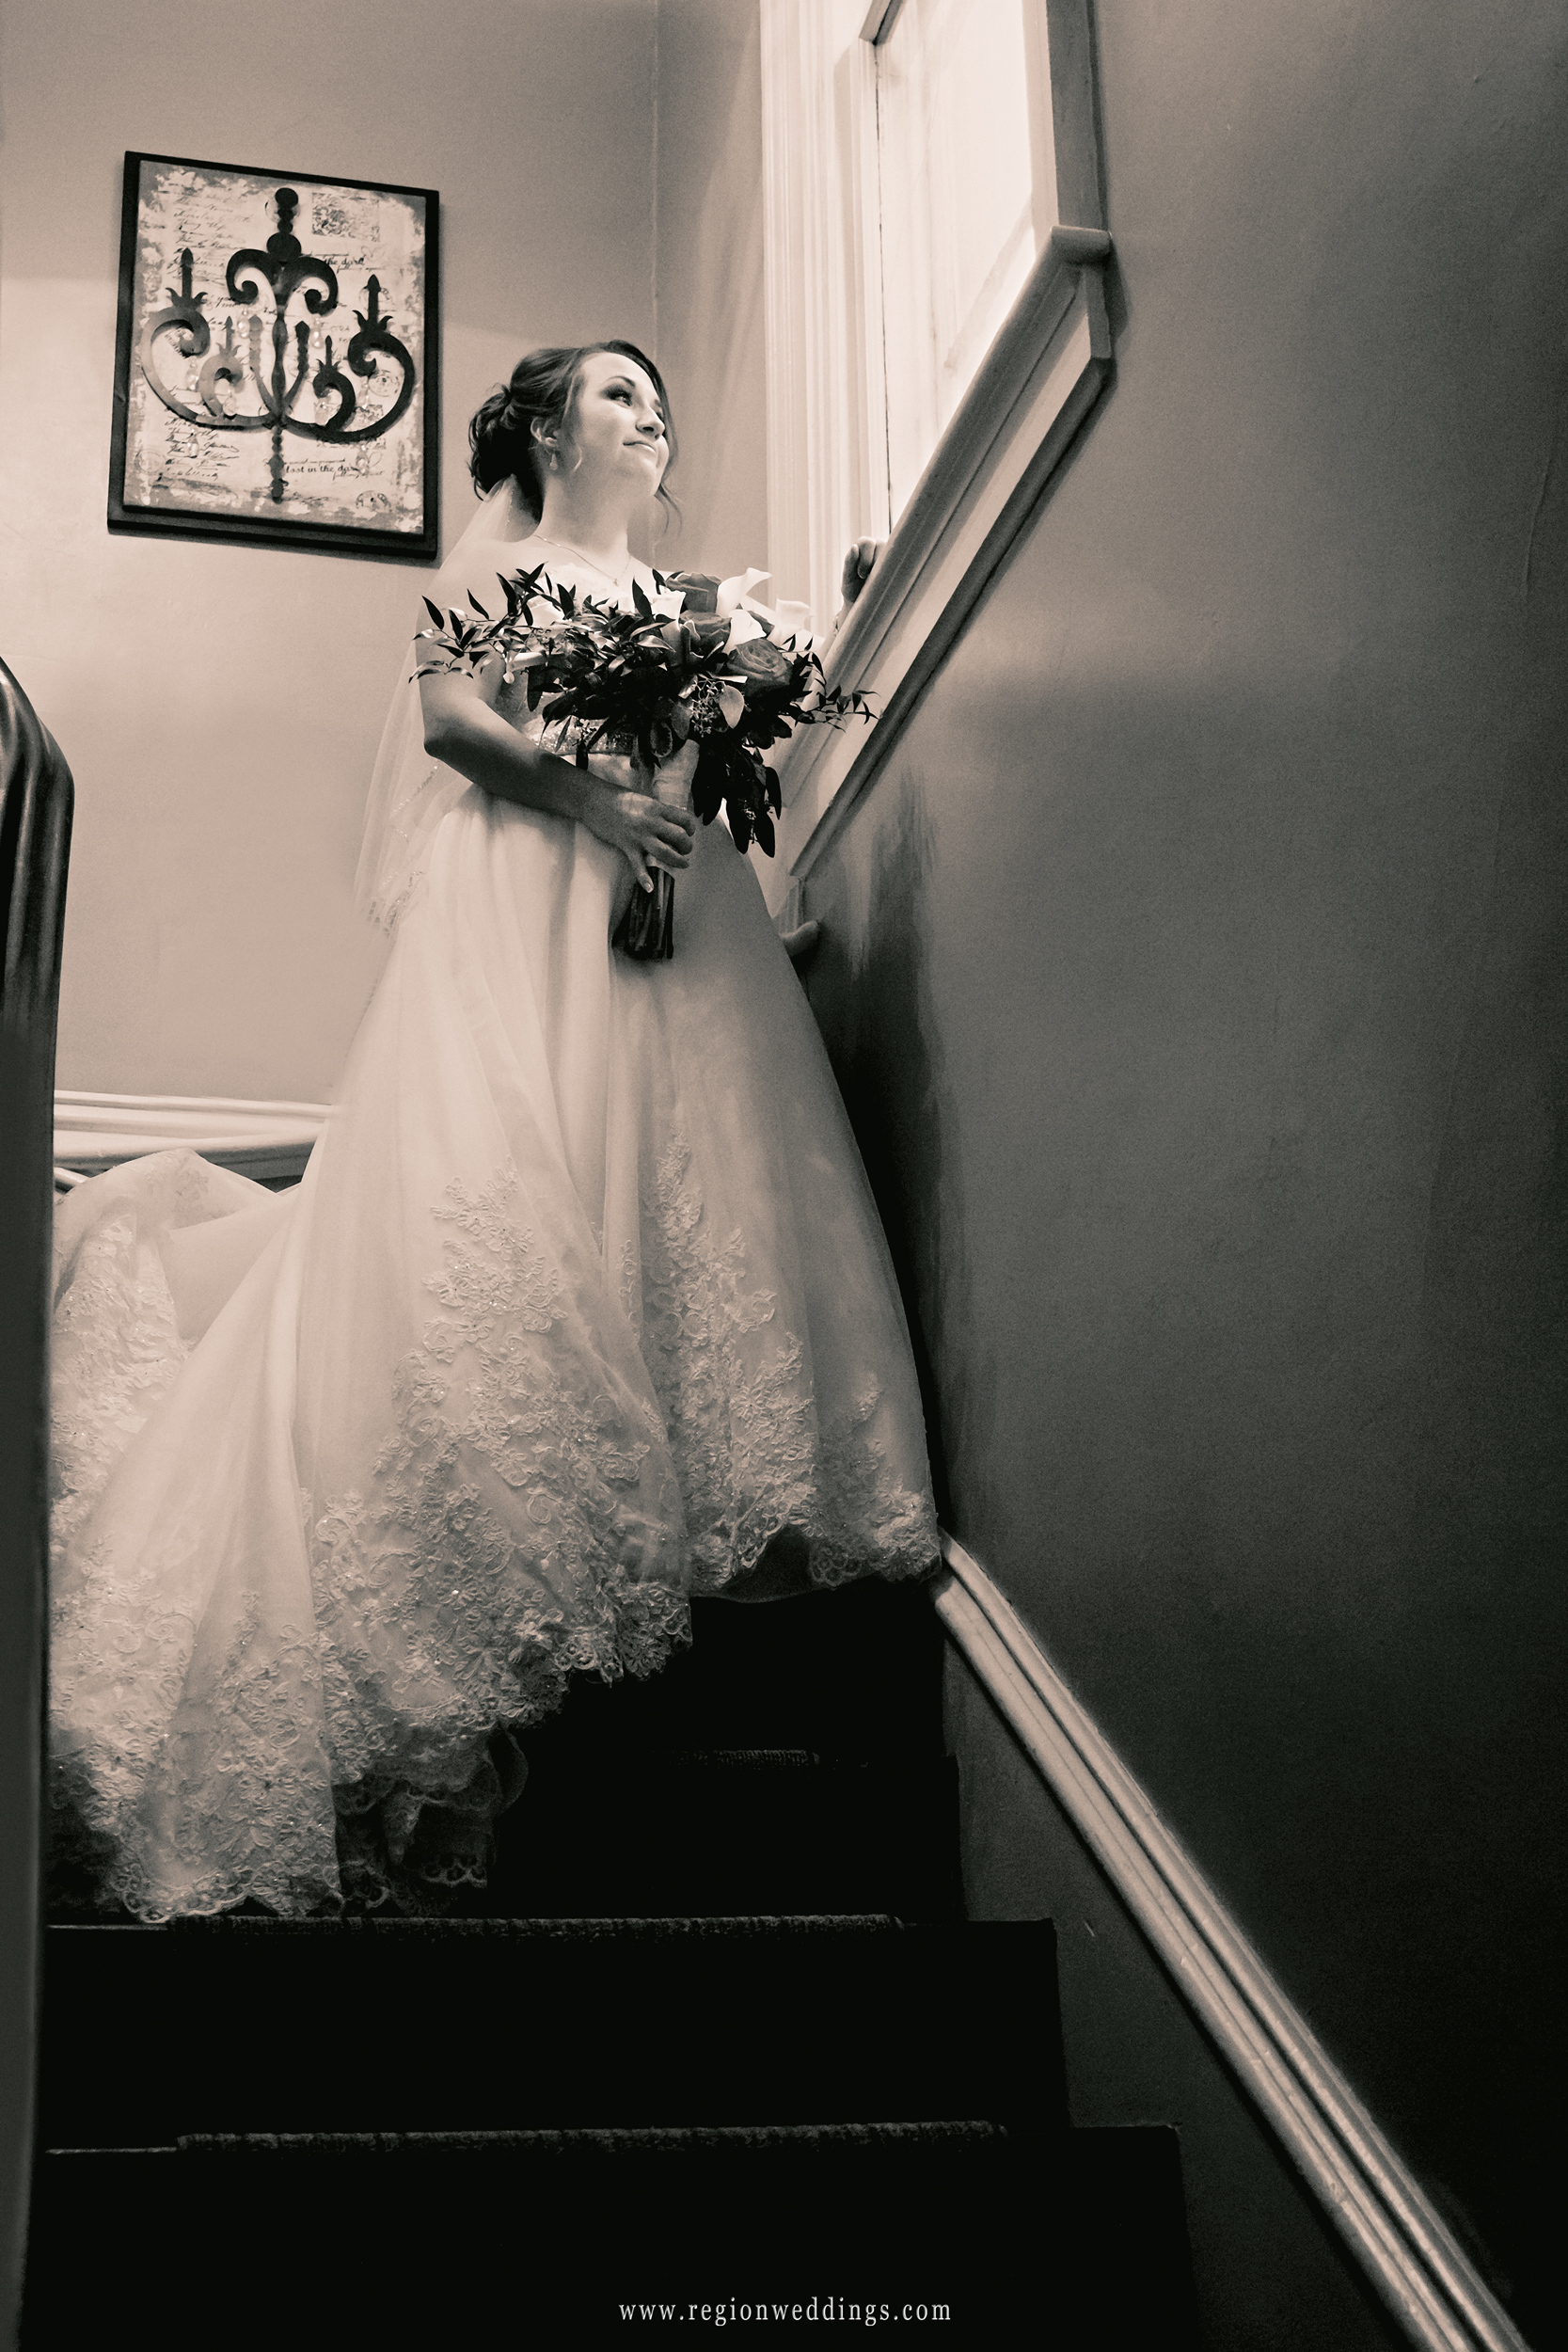 The bride descends from the loft at The Uptown Center in Michigan City, Indiana.